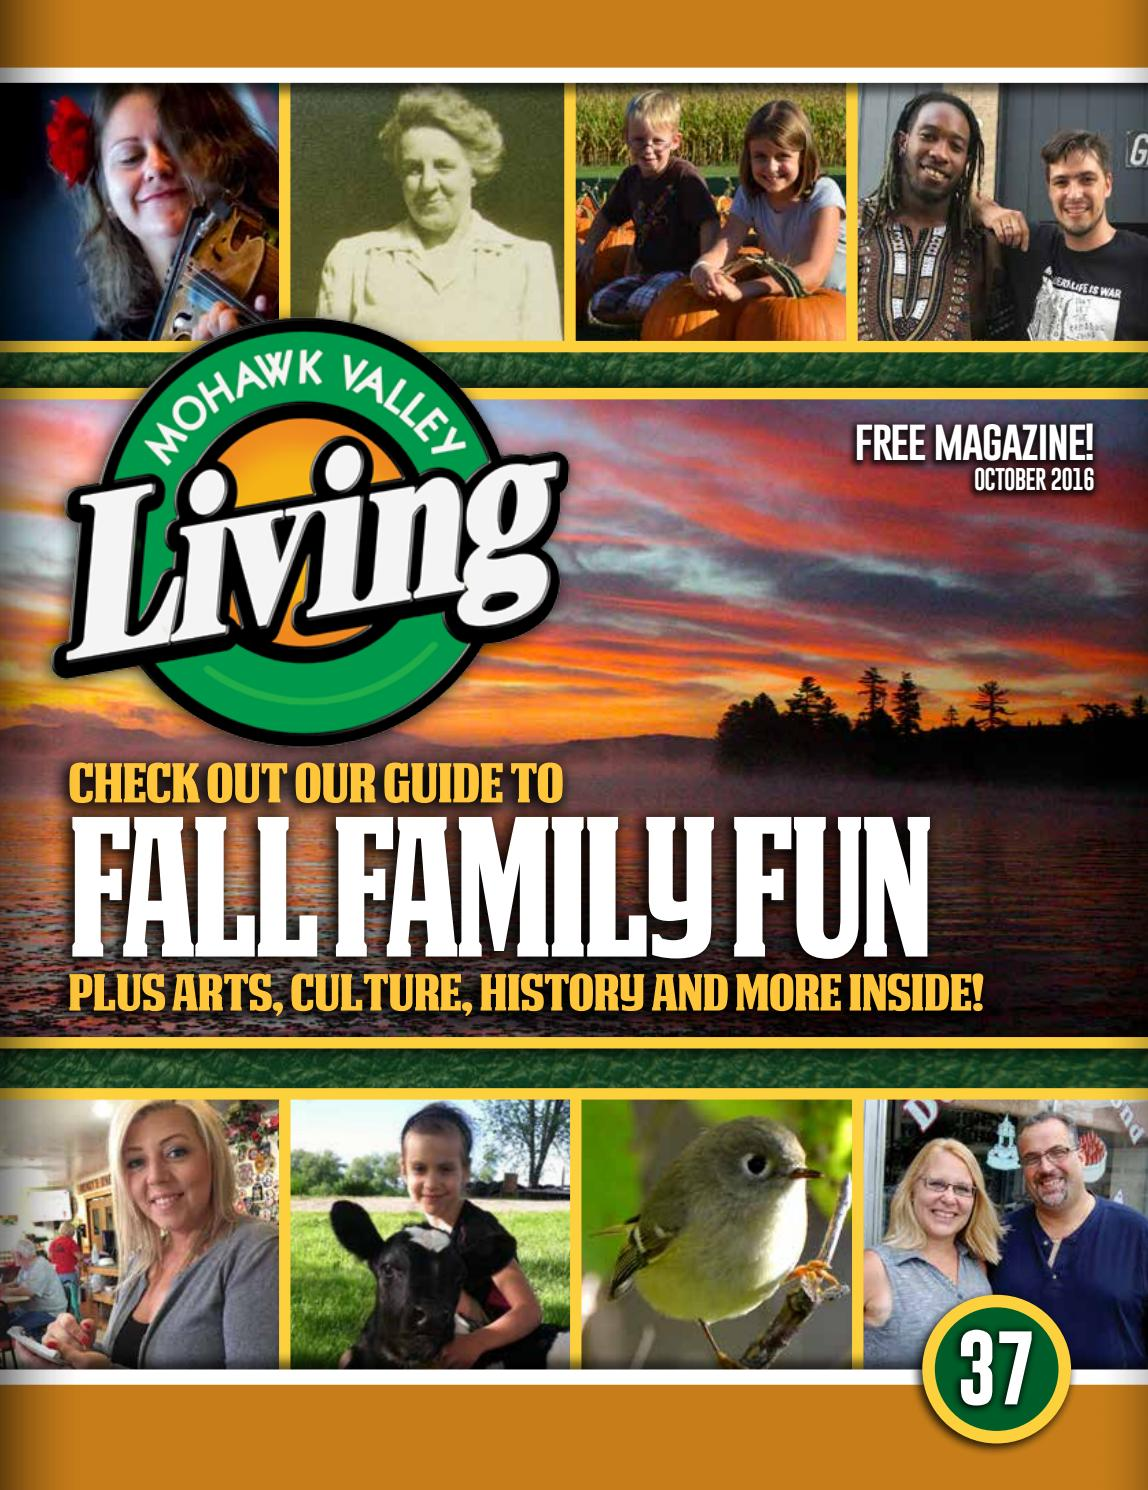 Mohawk Valley Living Magazine 37 October 2016 By Mohawk